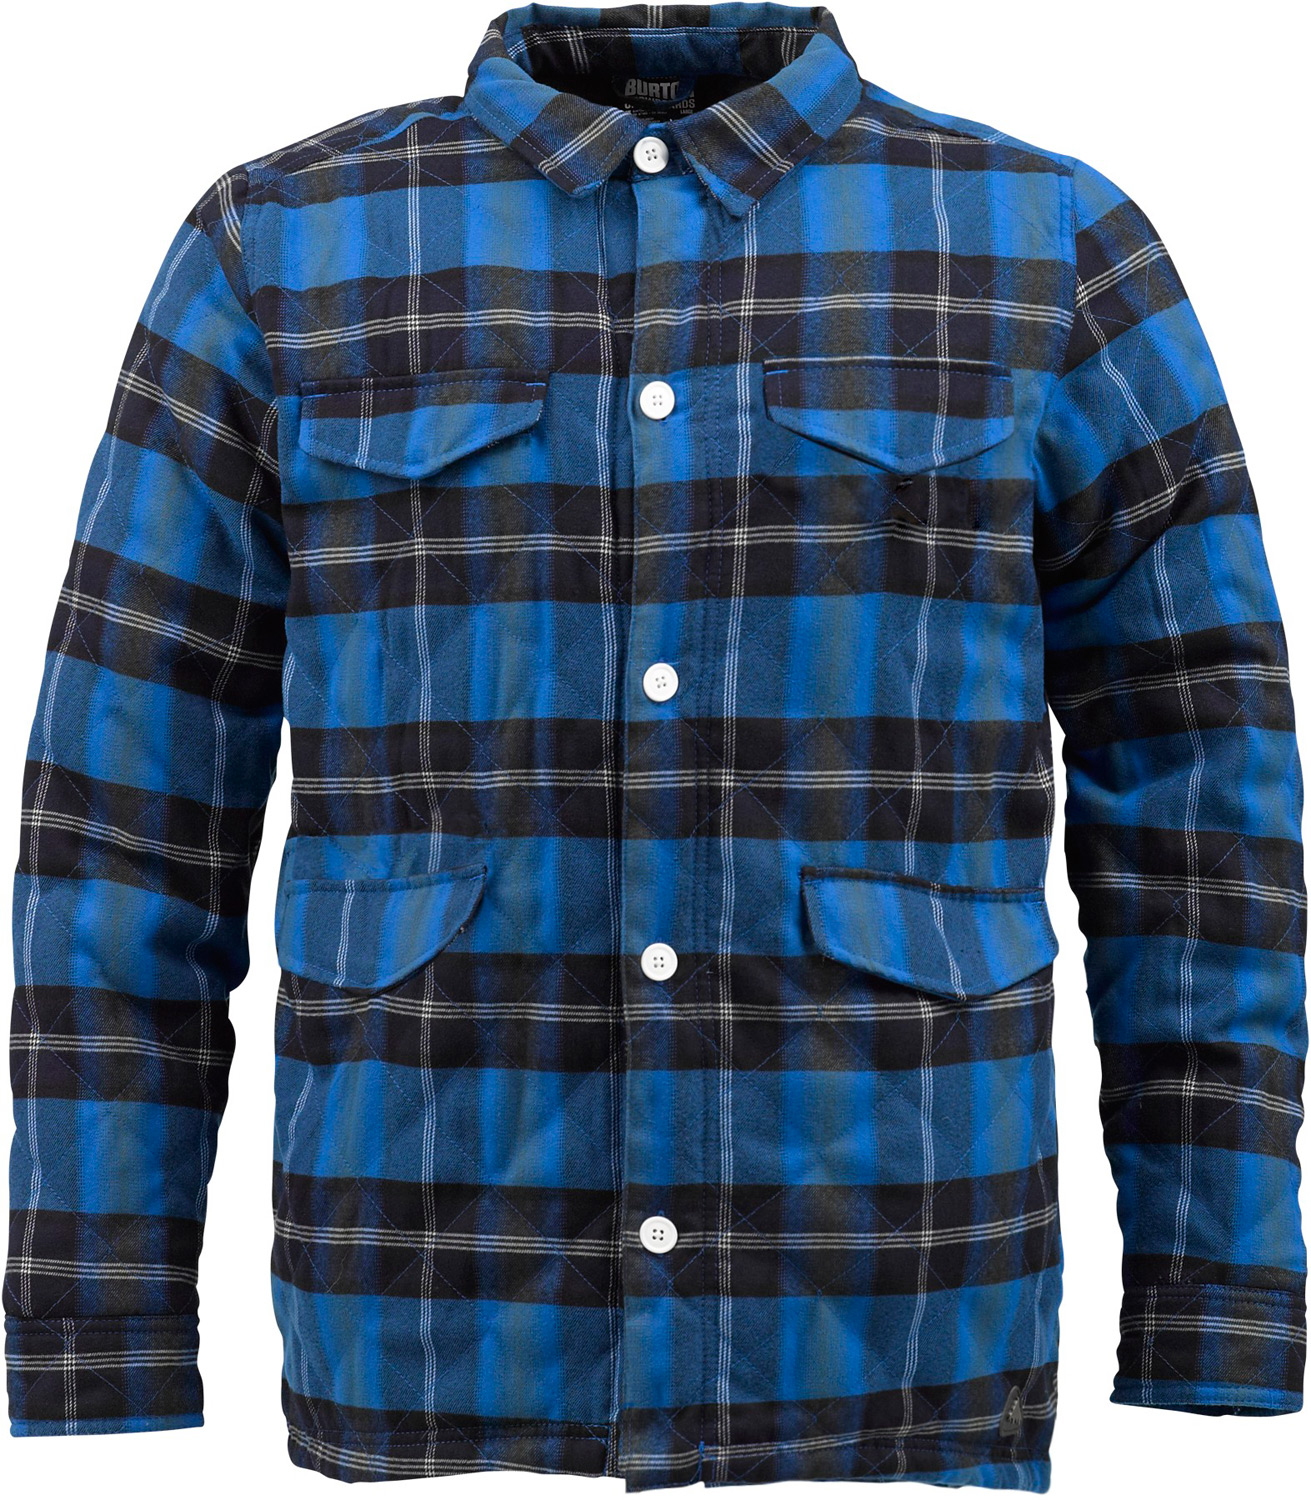 Snowboard A Vermont original insulated flannel with backwoods style direct from the general store.  Street Fit   Yarn-Dyed Flannel Fabric with DRYRIDE Mist-Defy   3M Thinsulate Insulation [40g Throughout]   Diamond Stitch Quilted Taffeta Lining   Snap Front Closure   Custom Logo Snap and Artwork Detail - $87.95